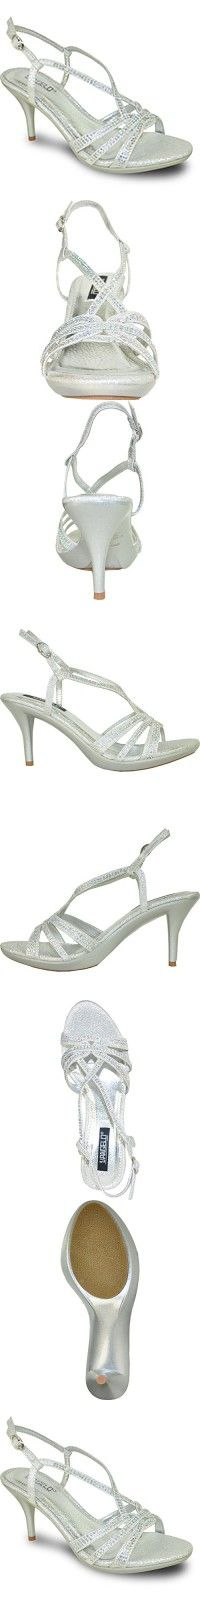 VANGELO Women Sandal ABBEY-4_SILVER Heel Party Prom & Wedding Sandal with Sparkling Strap Detail SILVER 8.5M #promheelssilver